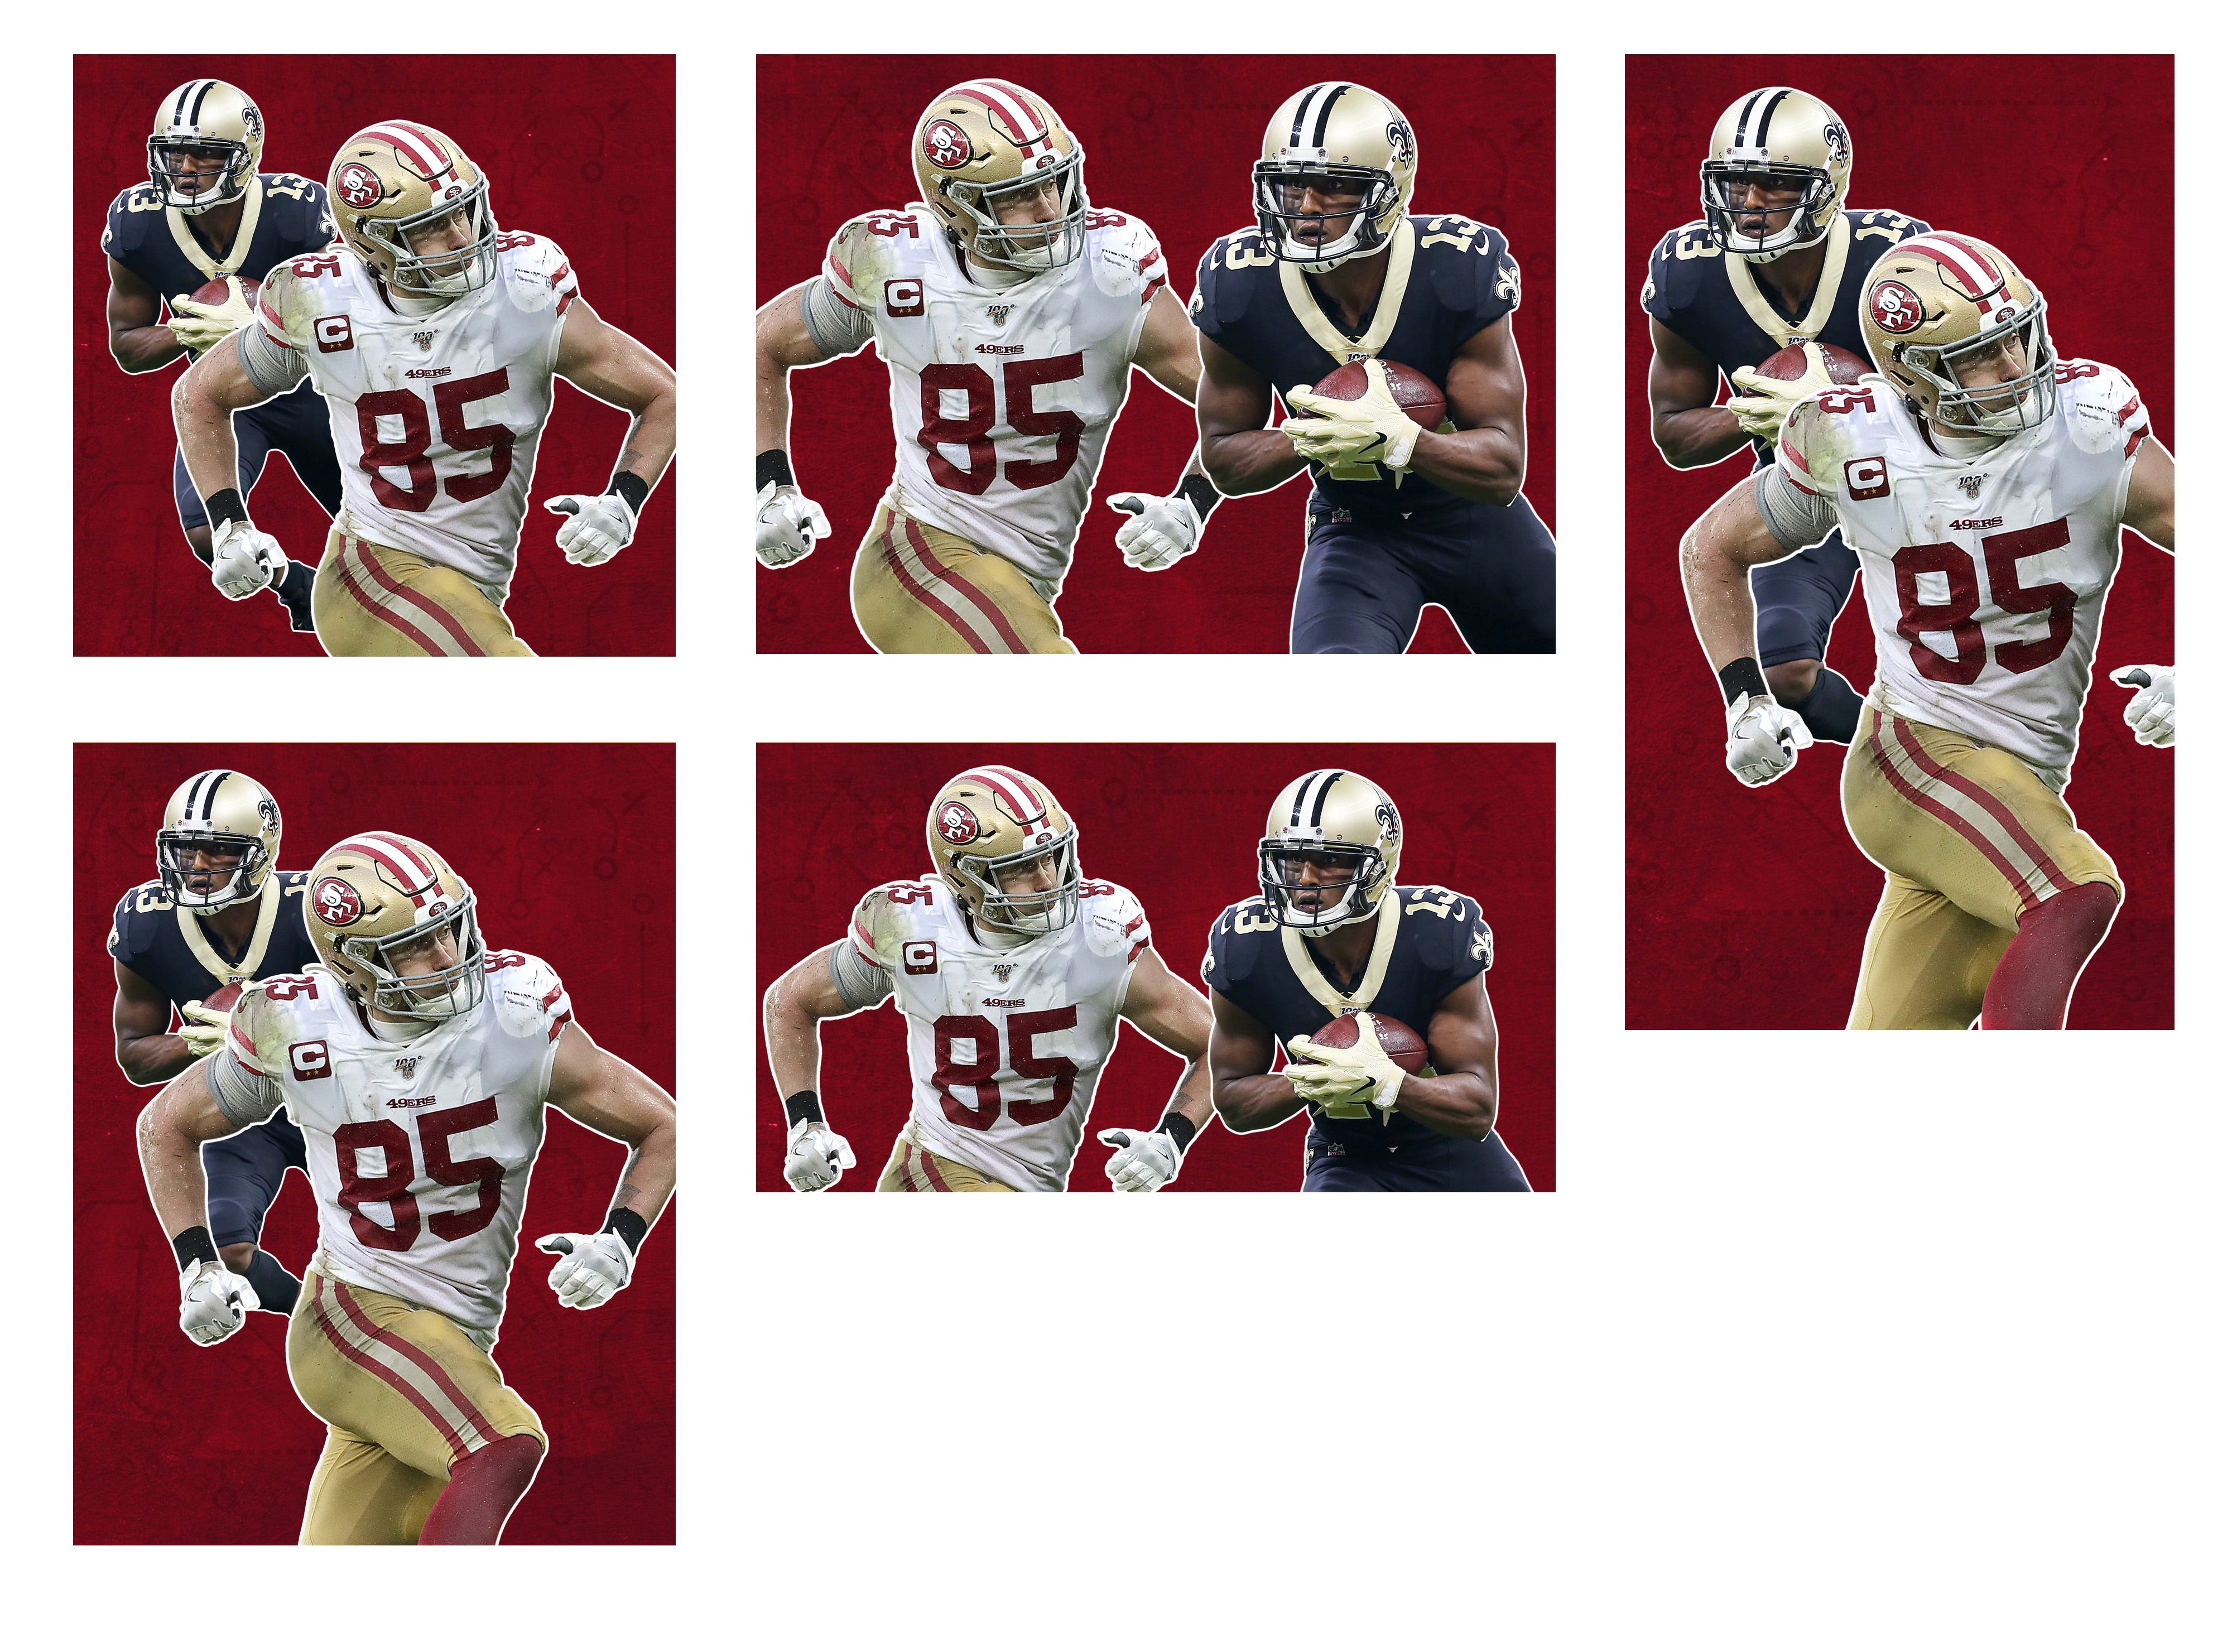 USA TODAY Sports' Week 14 NFL picks: Will 49ers knock Saints from No. 1 seed in NFC?